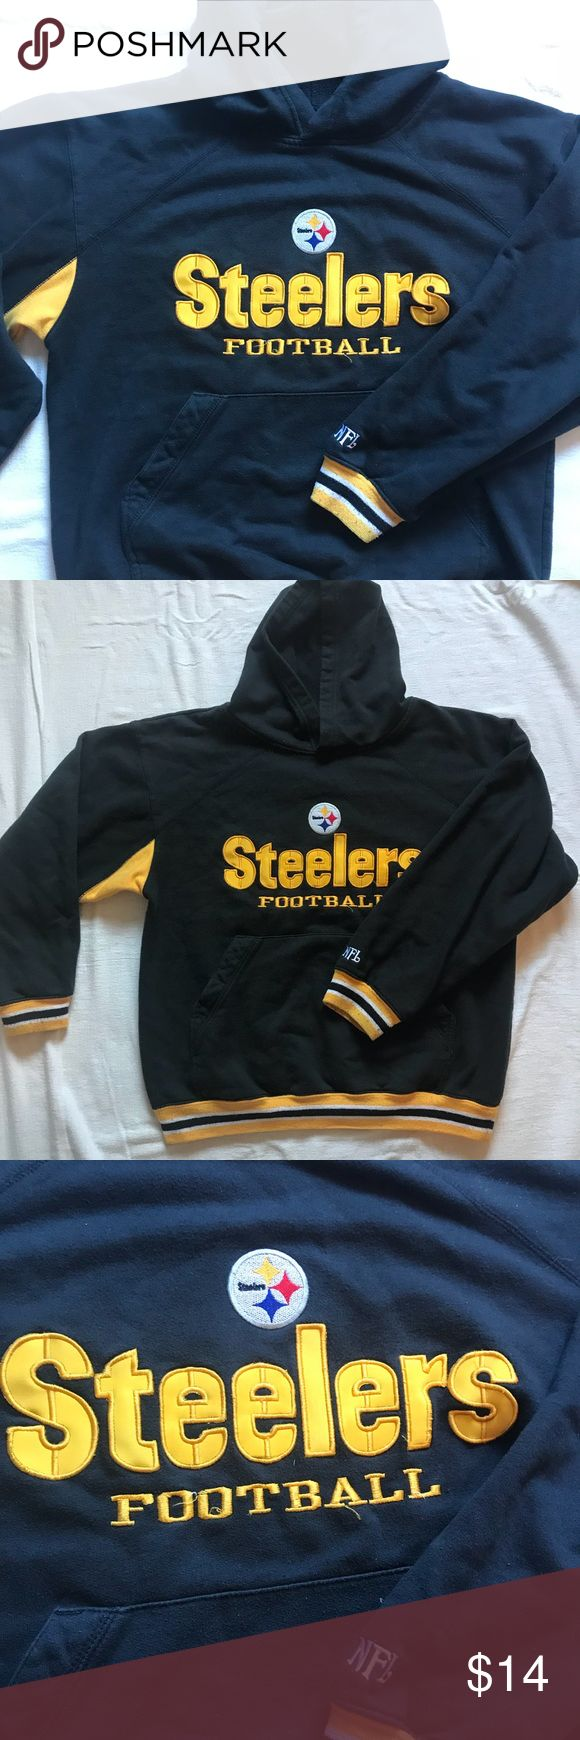 Vintage NFL Steelers hoodie Vintage NFL Steelers hoodie. In good condition. the tag was cut off however I would say it's about a size kids L or adult S. Black and yellow black and yellow black and yellow Other